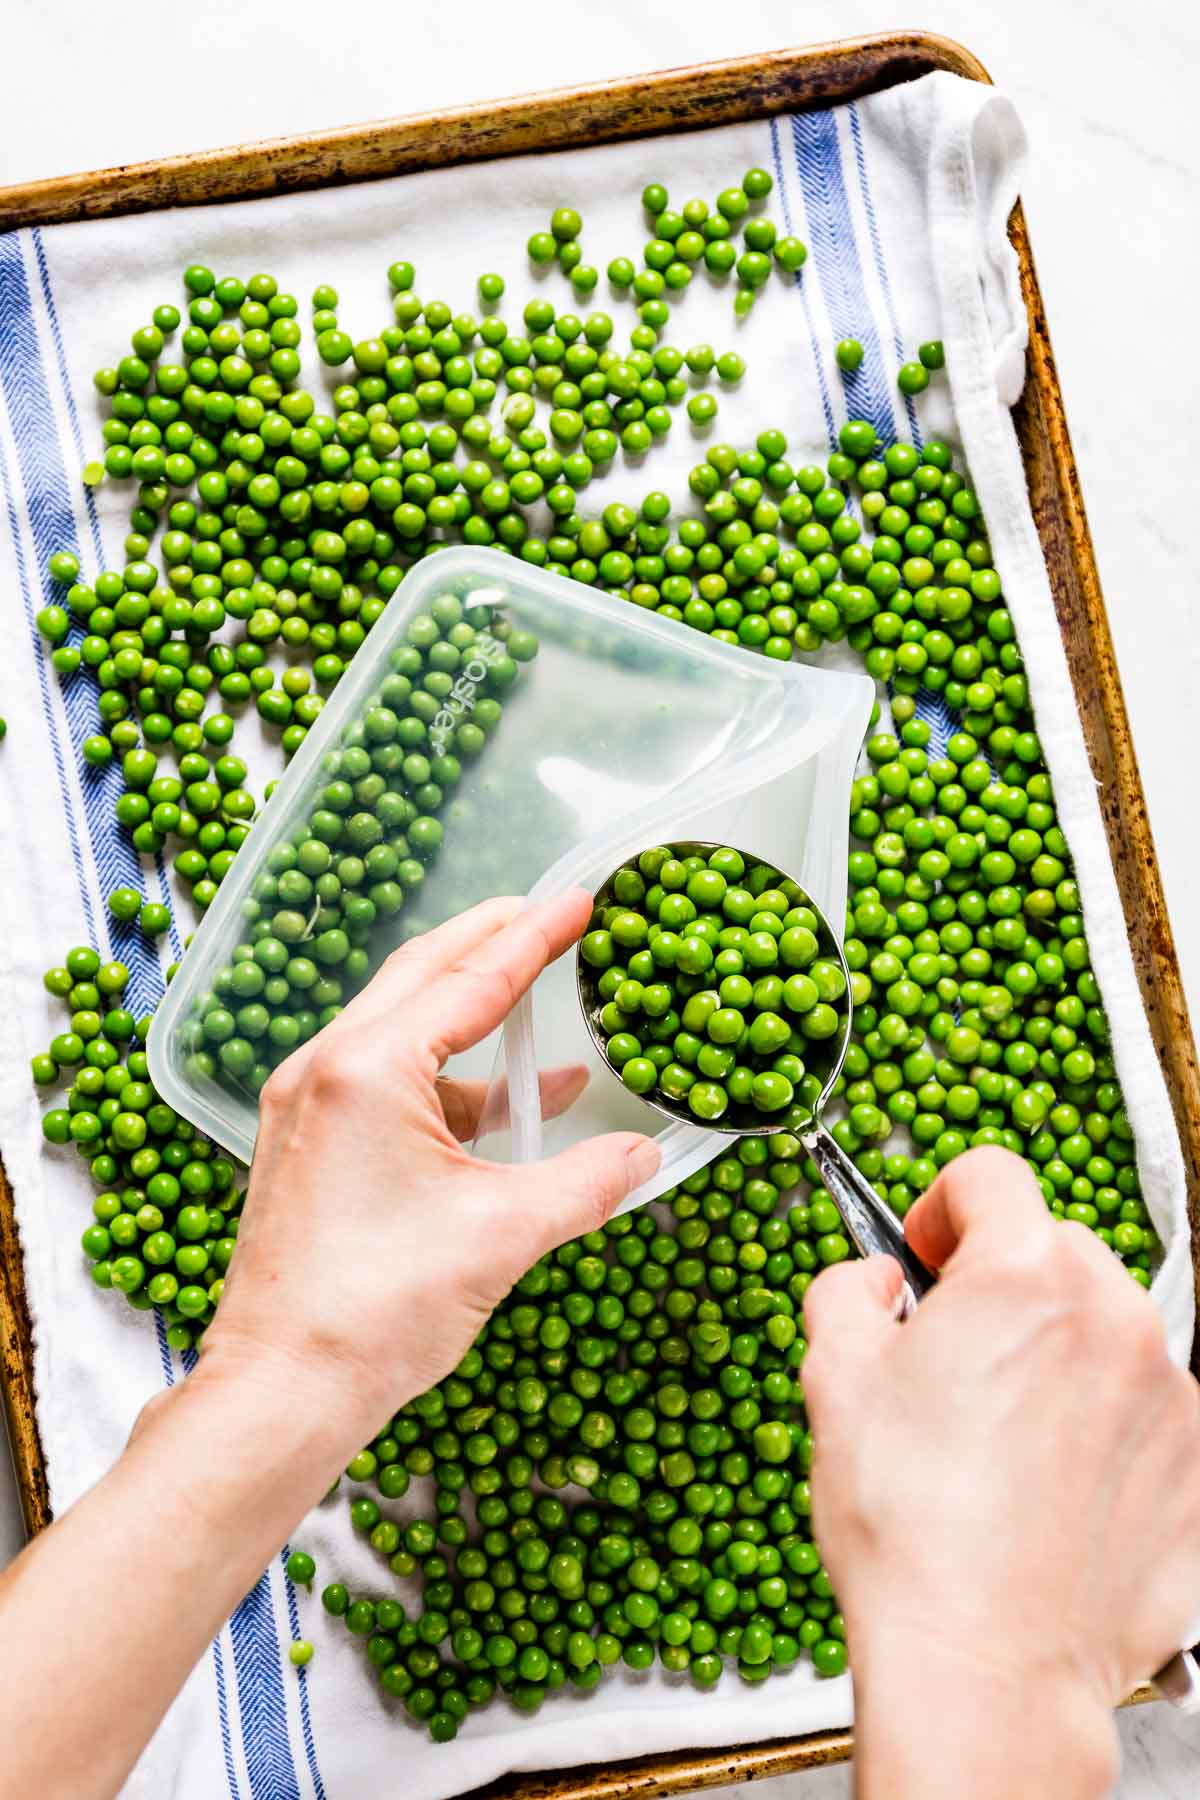 Person placing blanched peas into freezer bag